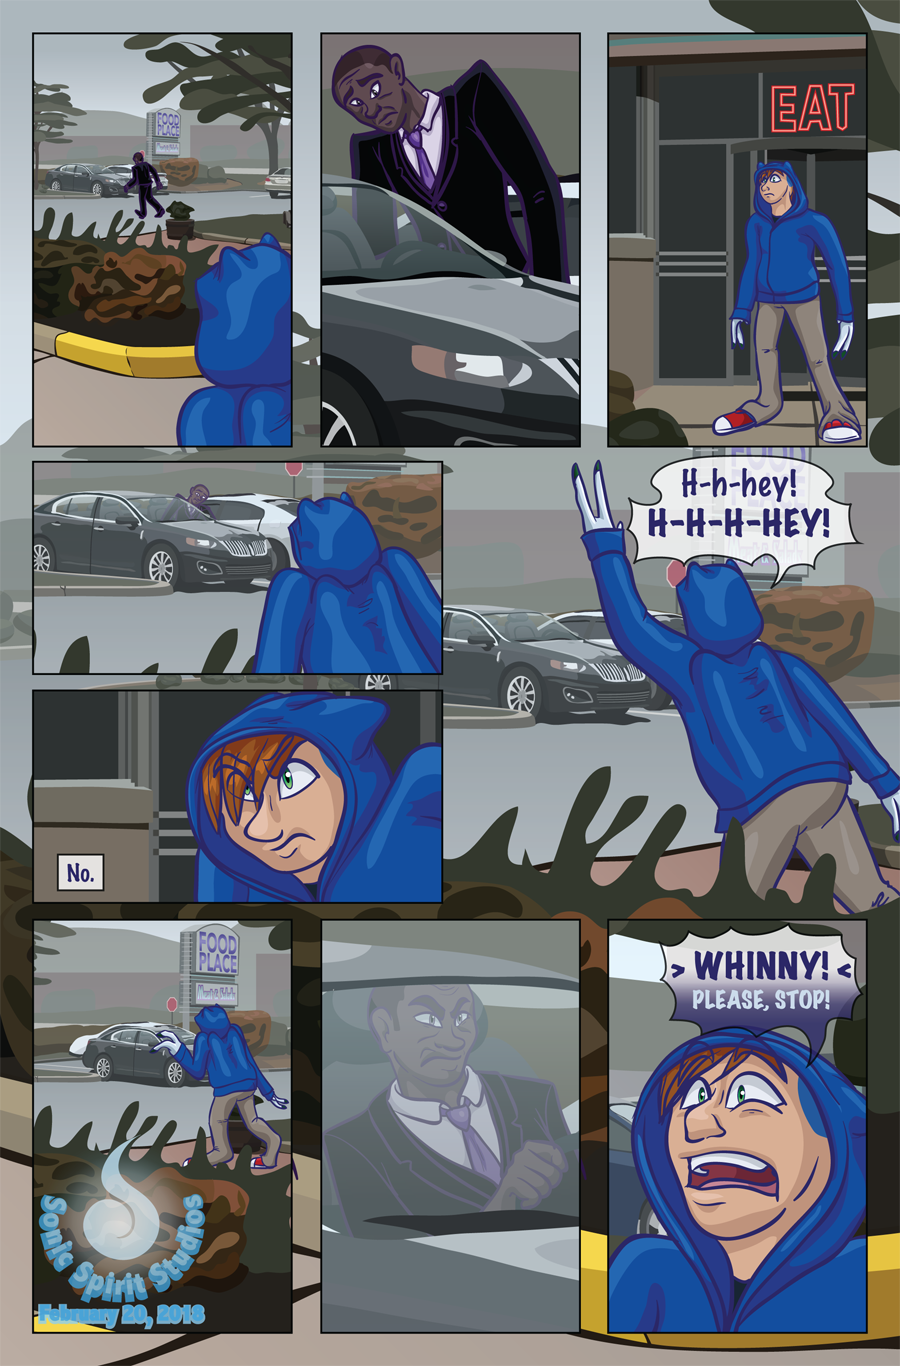 Most recent image: The New Normal - Prologue Page 3